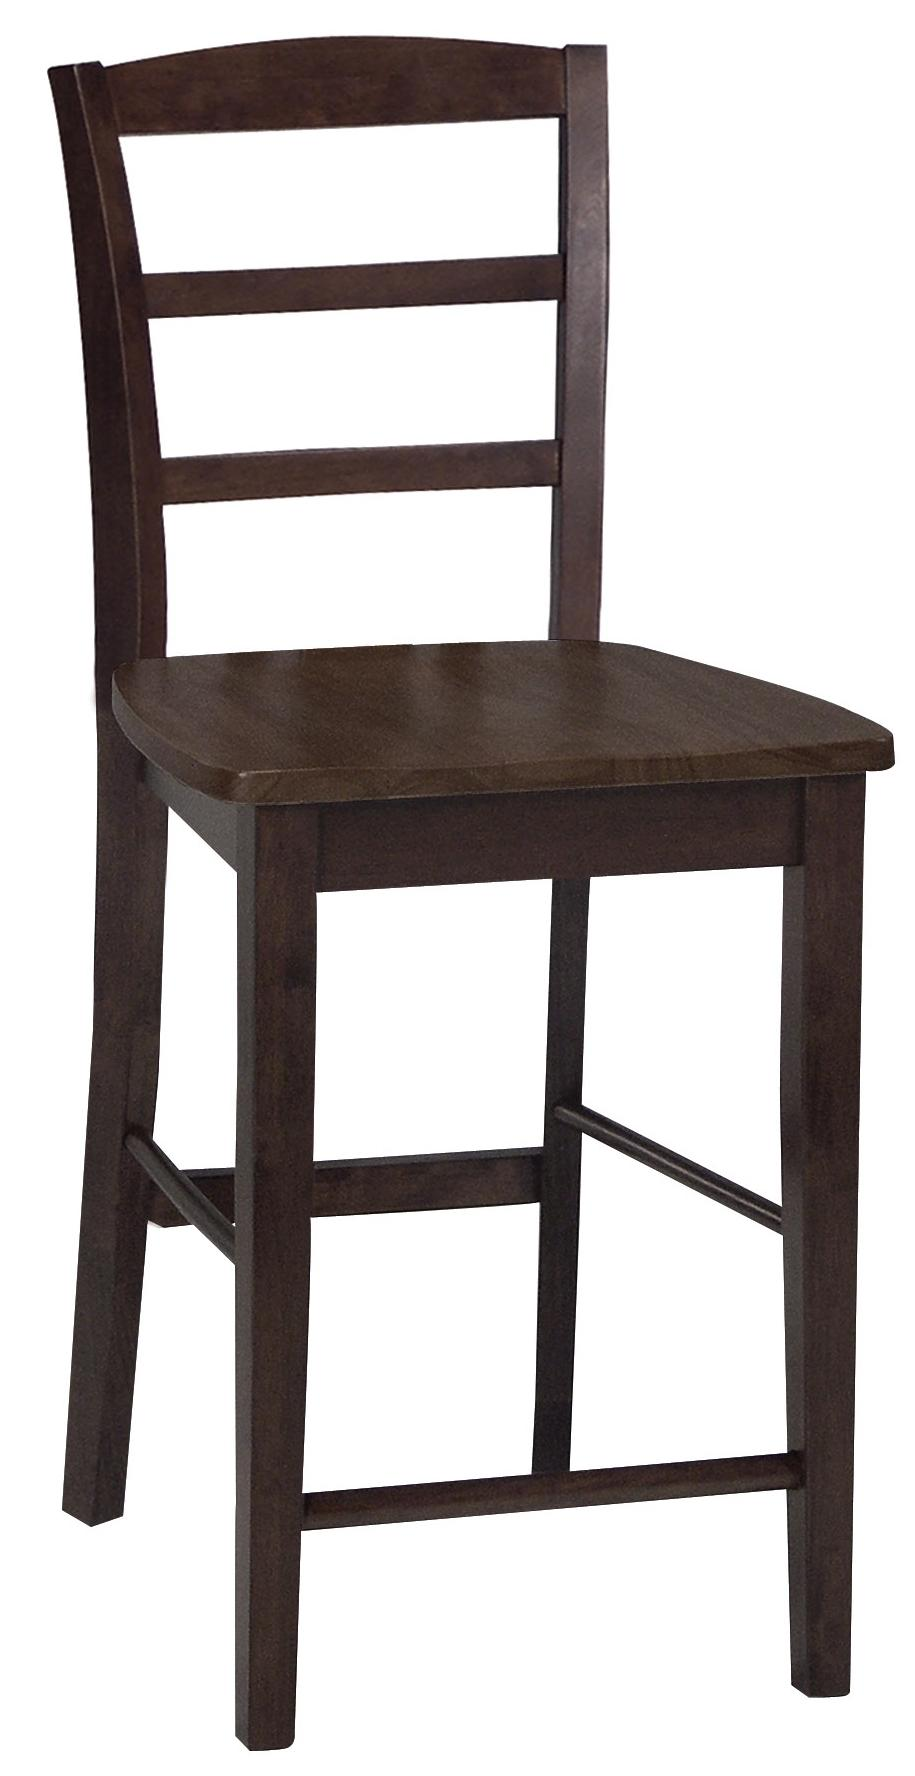 John thomas dining essentials ladderback bar chair reeds for Dining room essentials